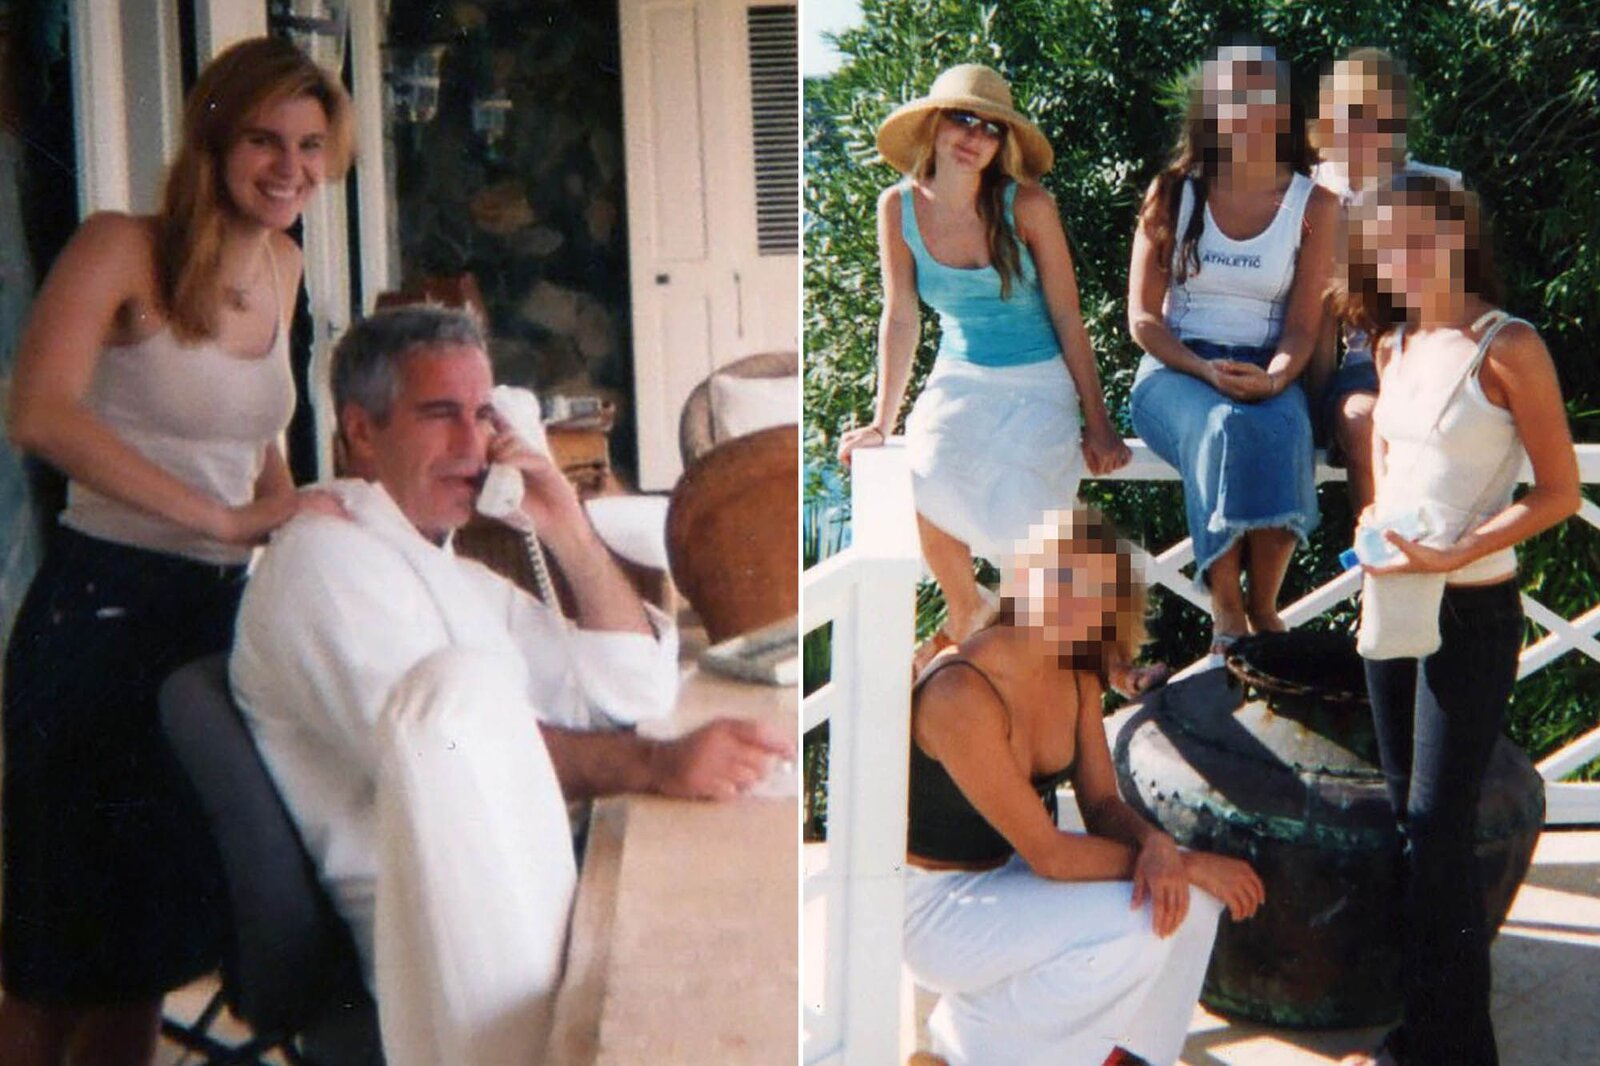 A man of mystery, many wonder exactly what went down on Little St. James. We're slowly learning about Jeffrey Epstein's activities on his island.